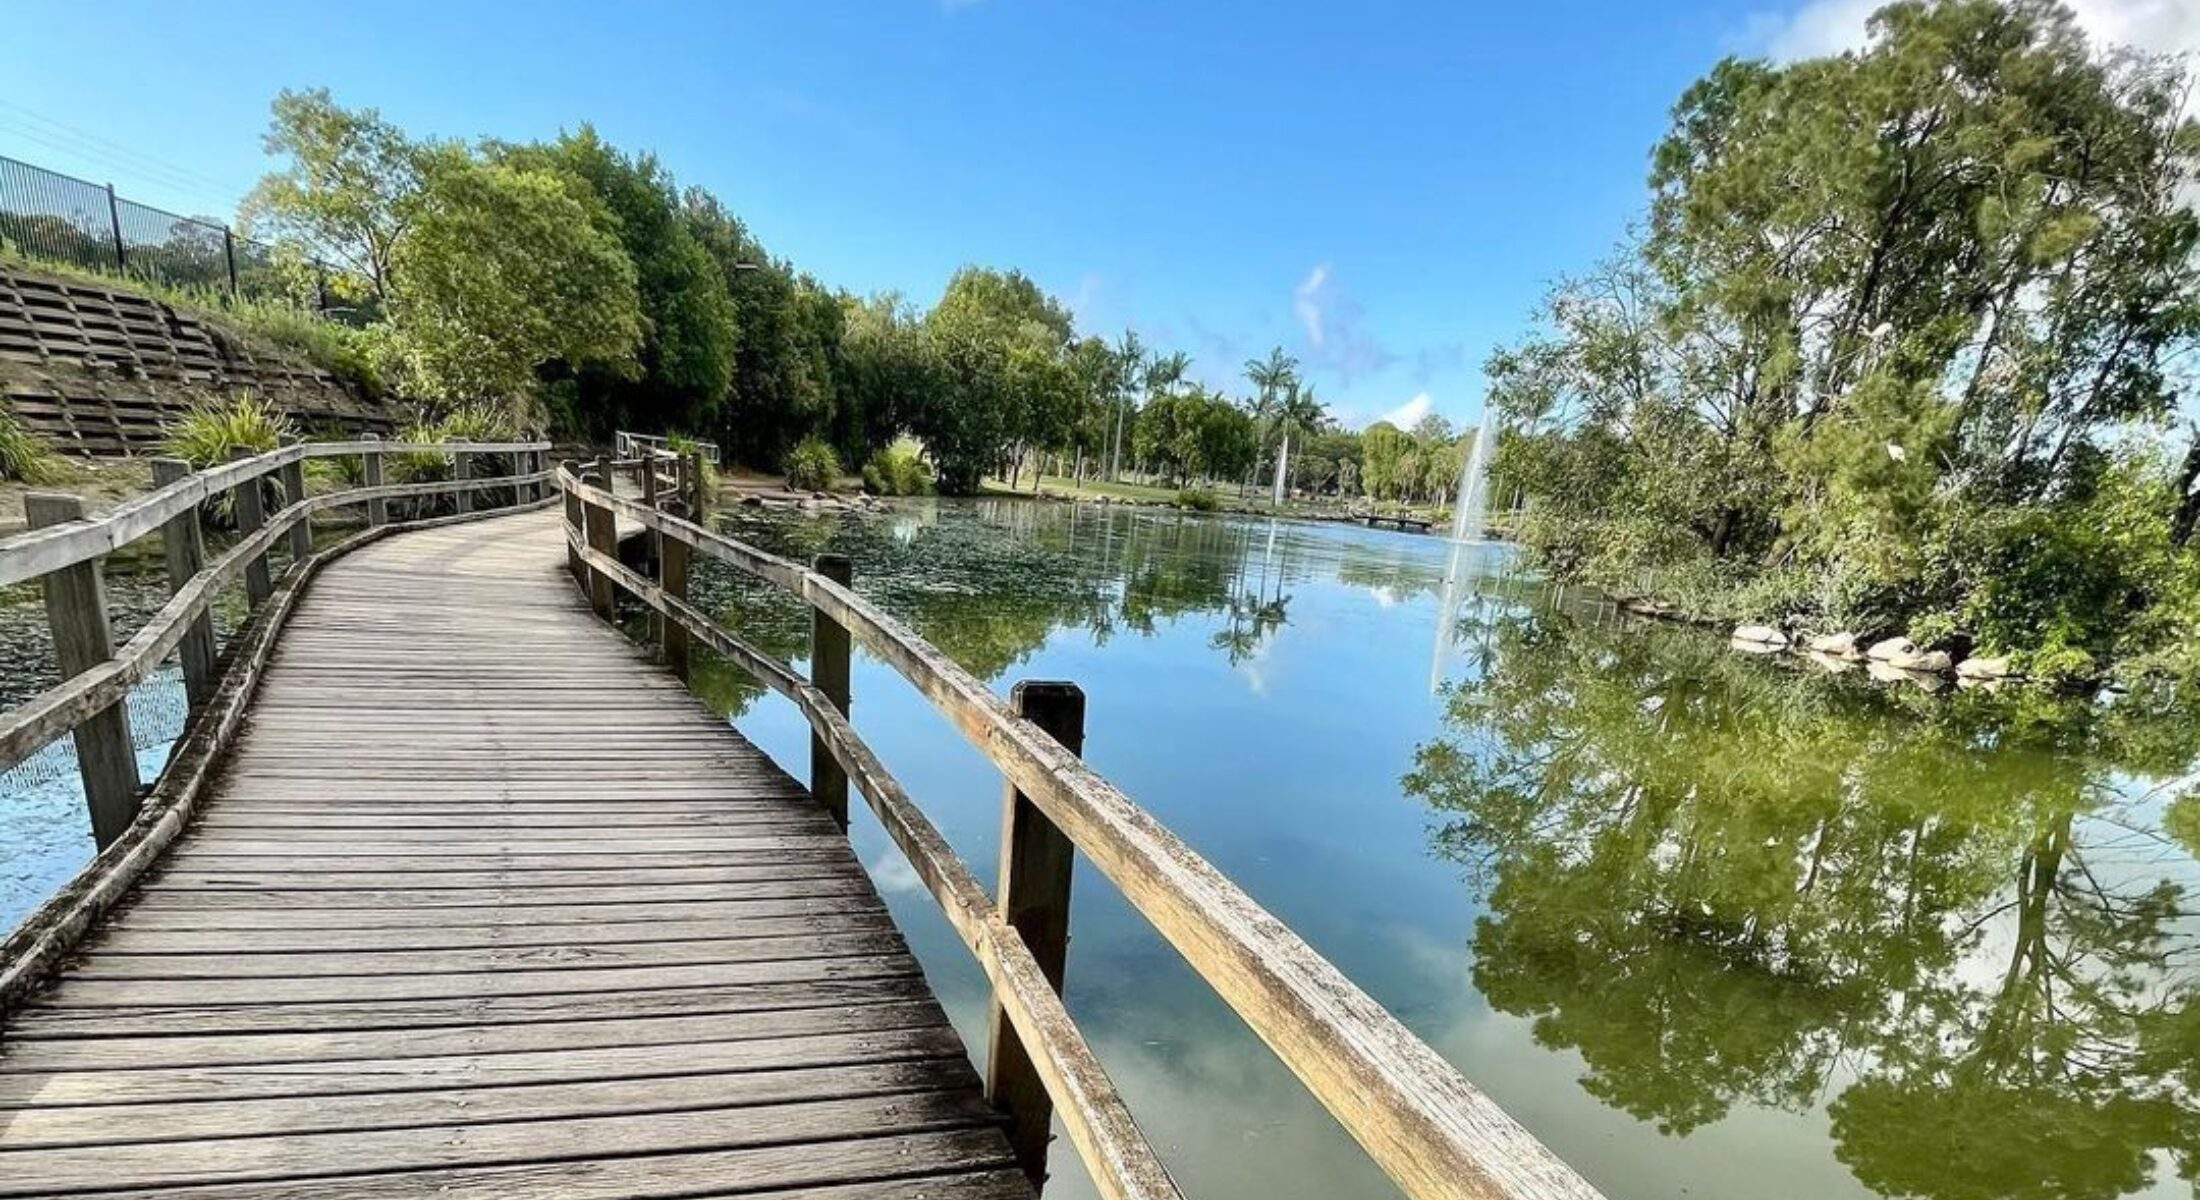 Centenary Lakes Caboolture Moreton Bay Region Walking Paths near Brisbane credit itsarlothechihuahua